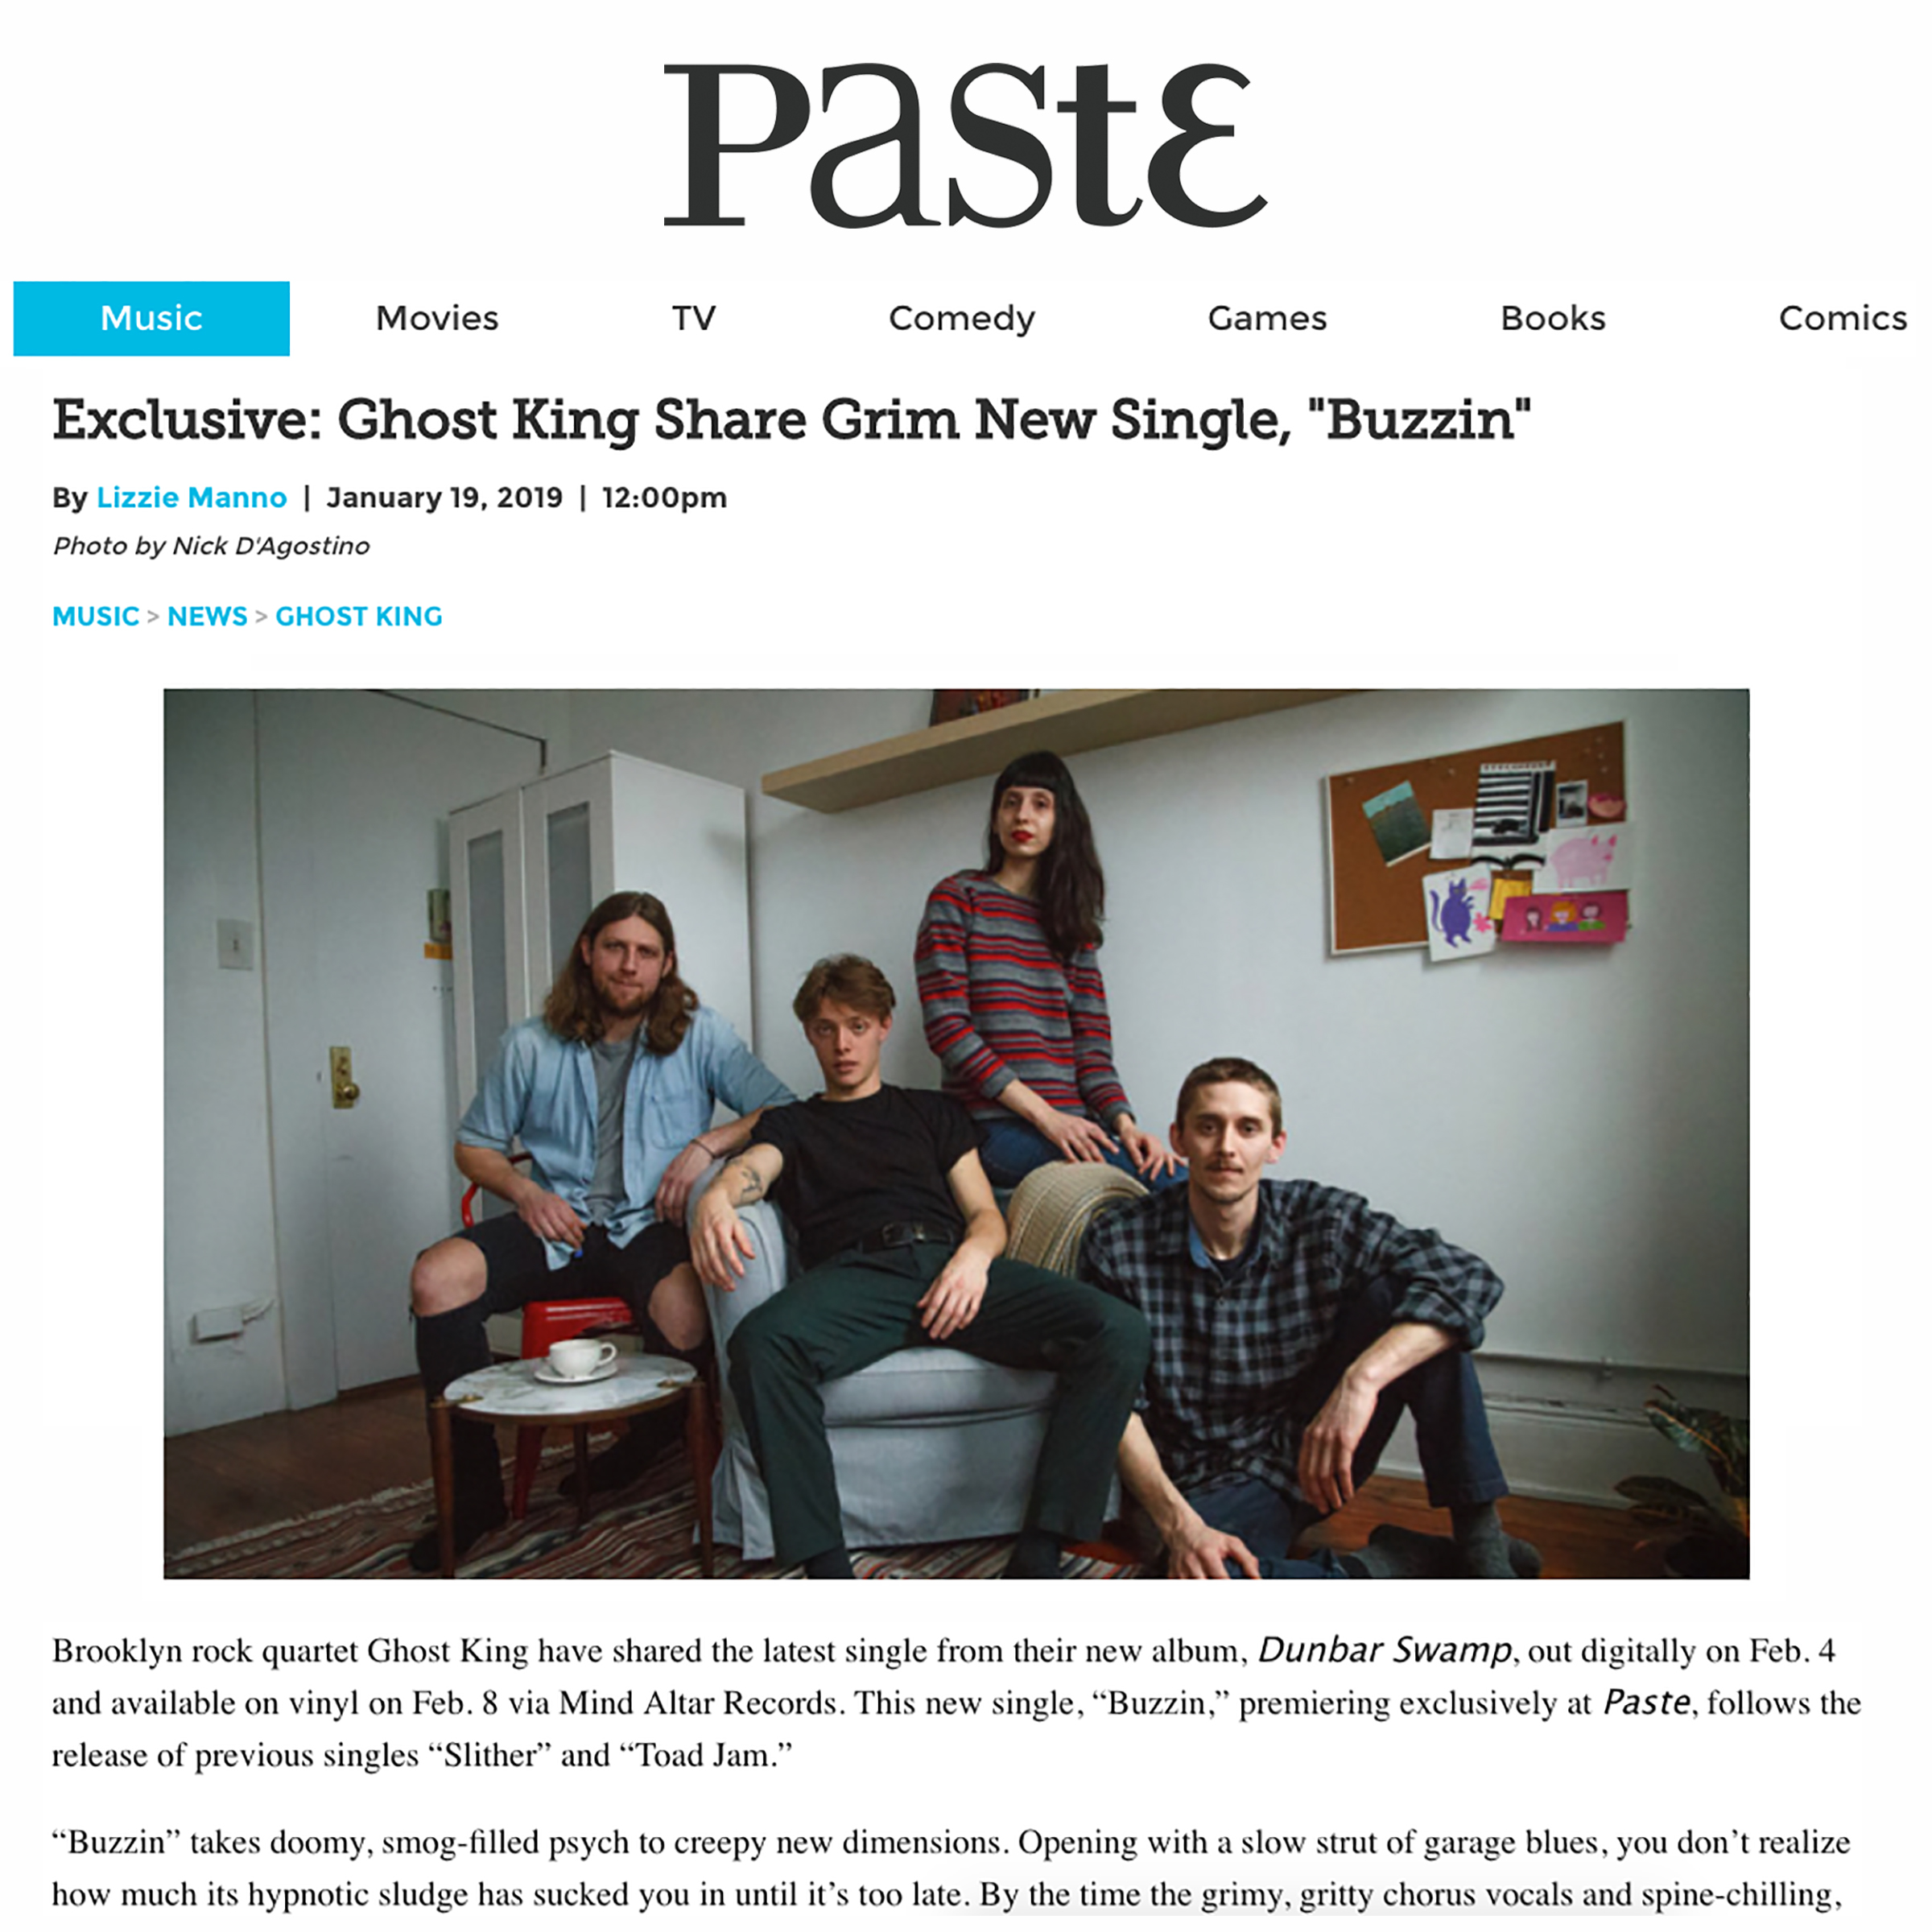 ghost_king_paste_magazine_03-01 copy.jpg